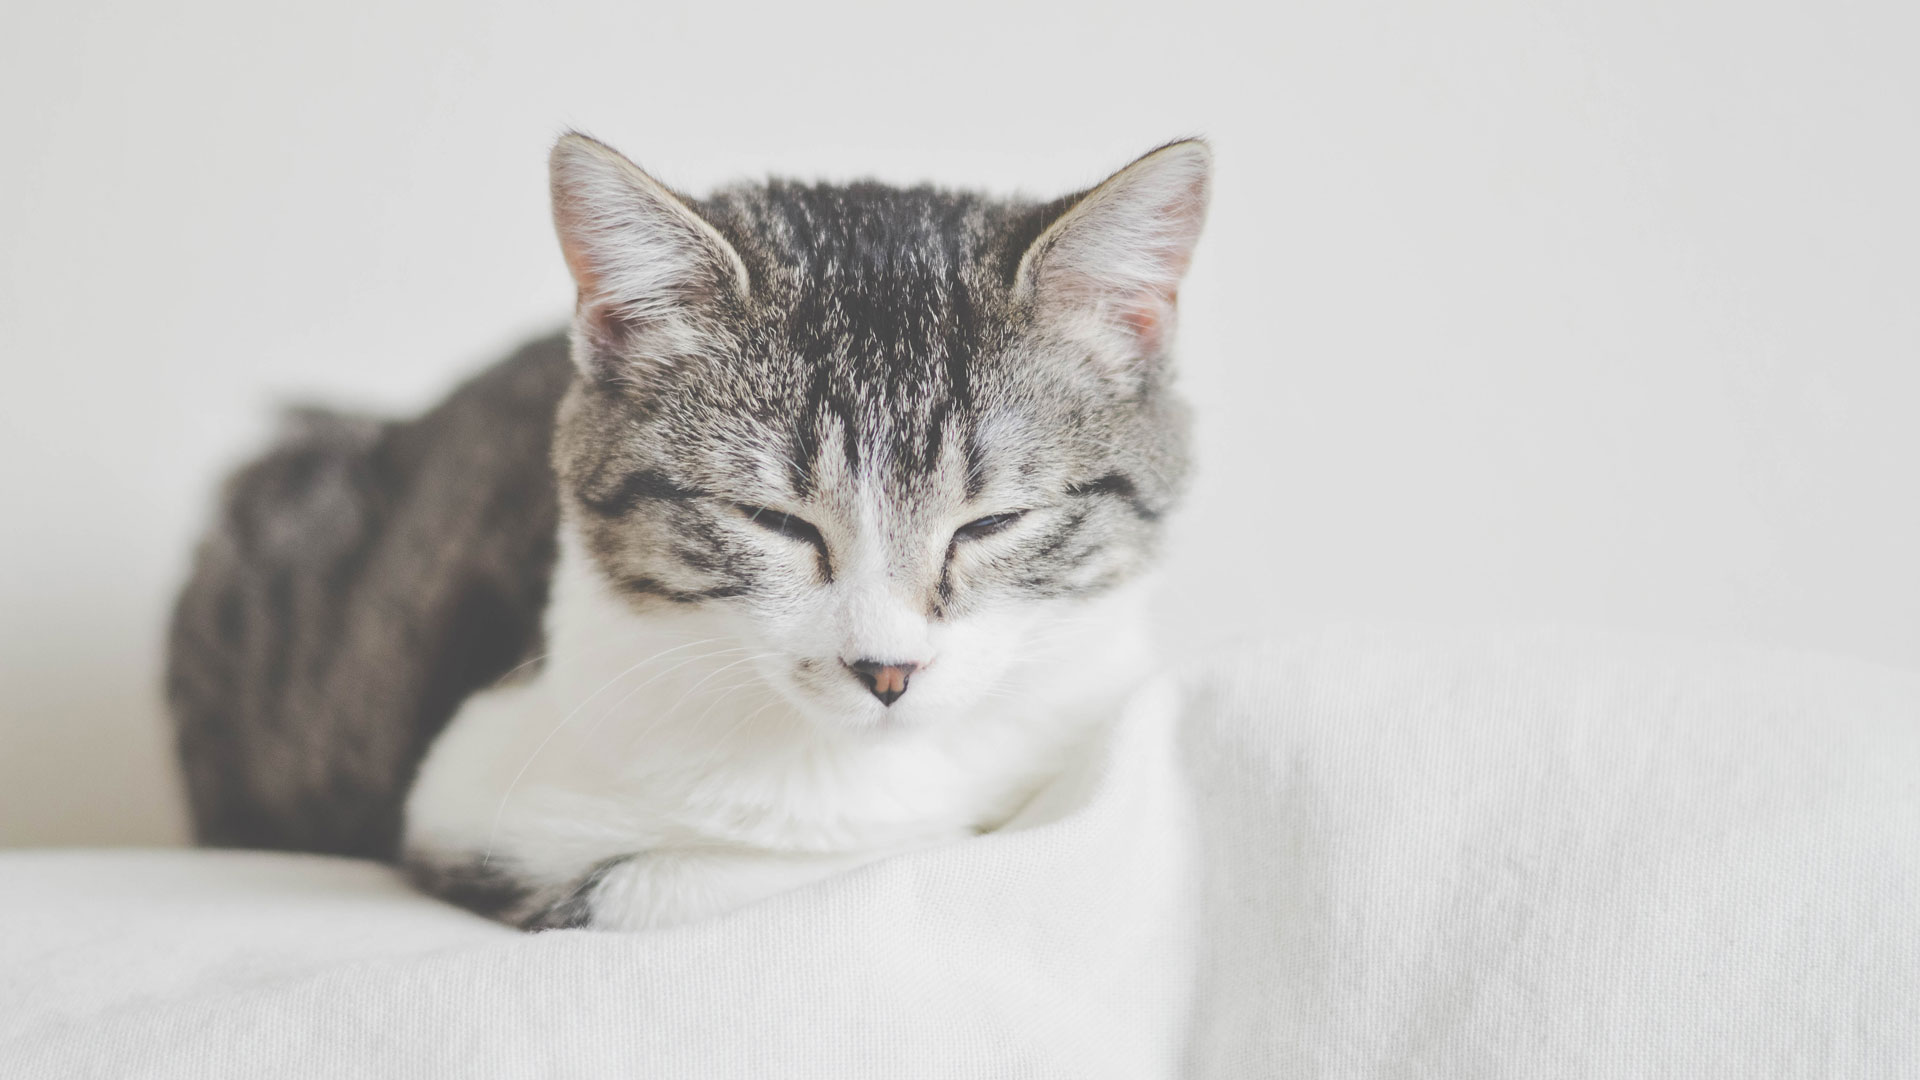 Shy Cats - How to Help Your Cat Relax | Cats Protection